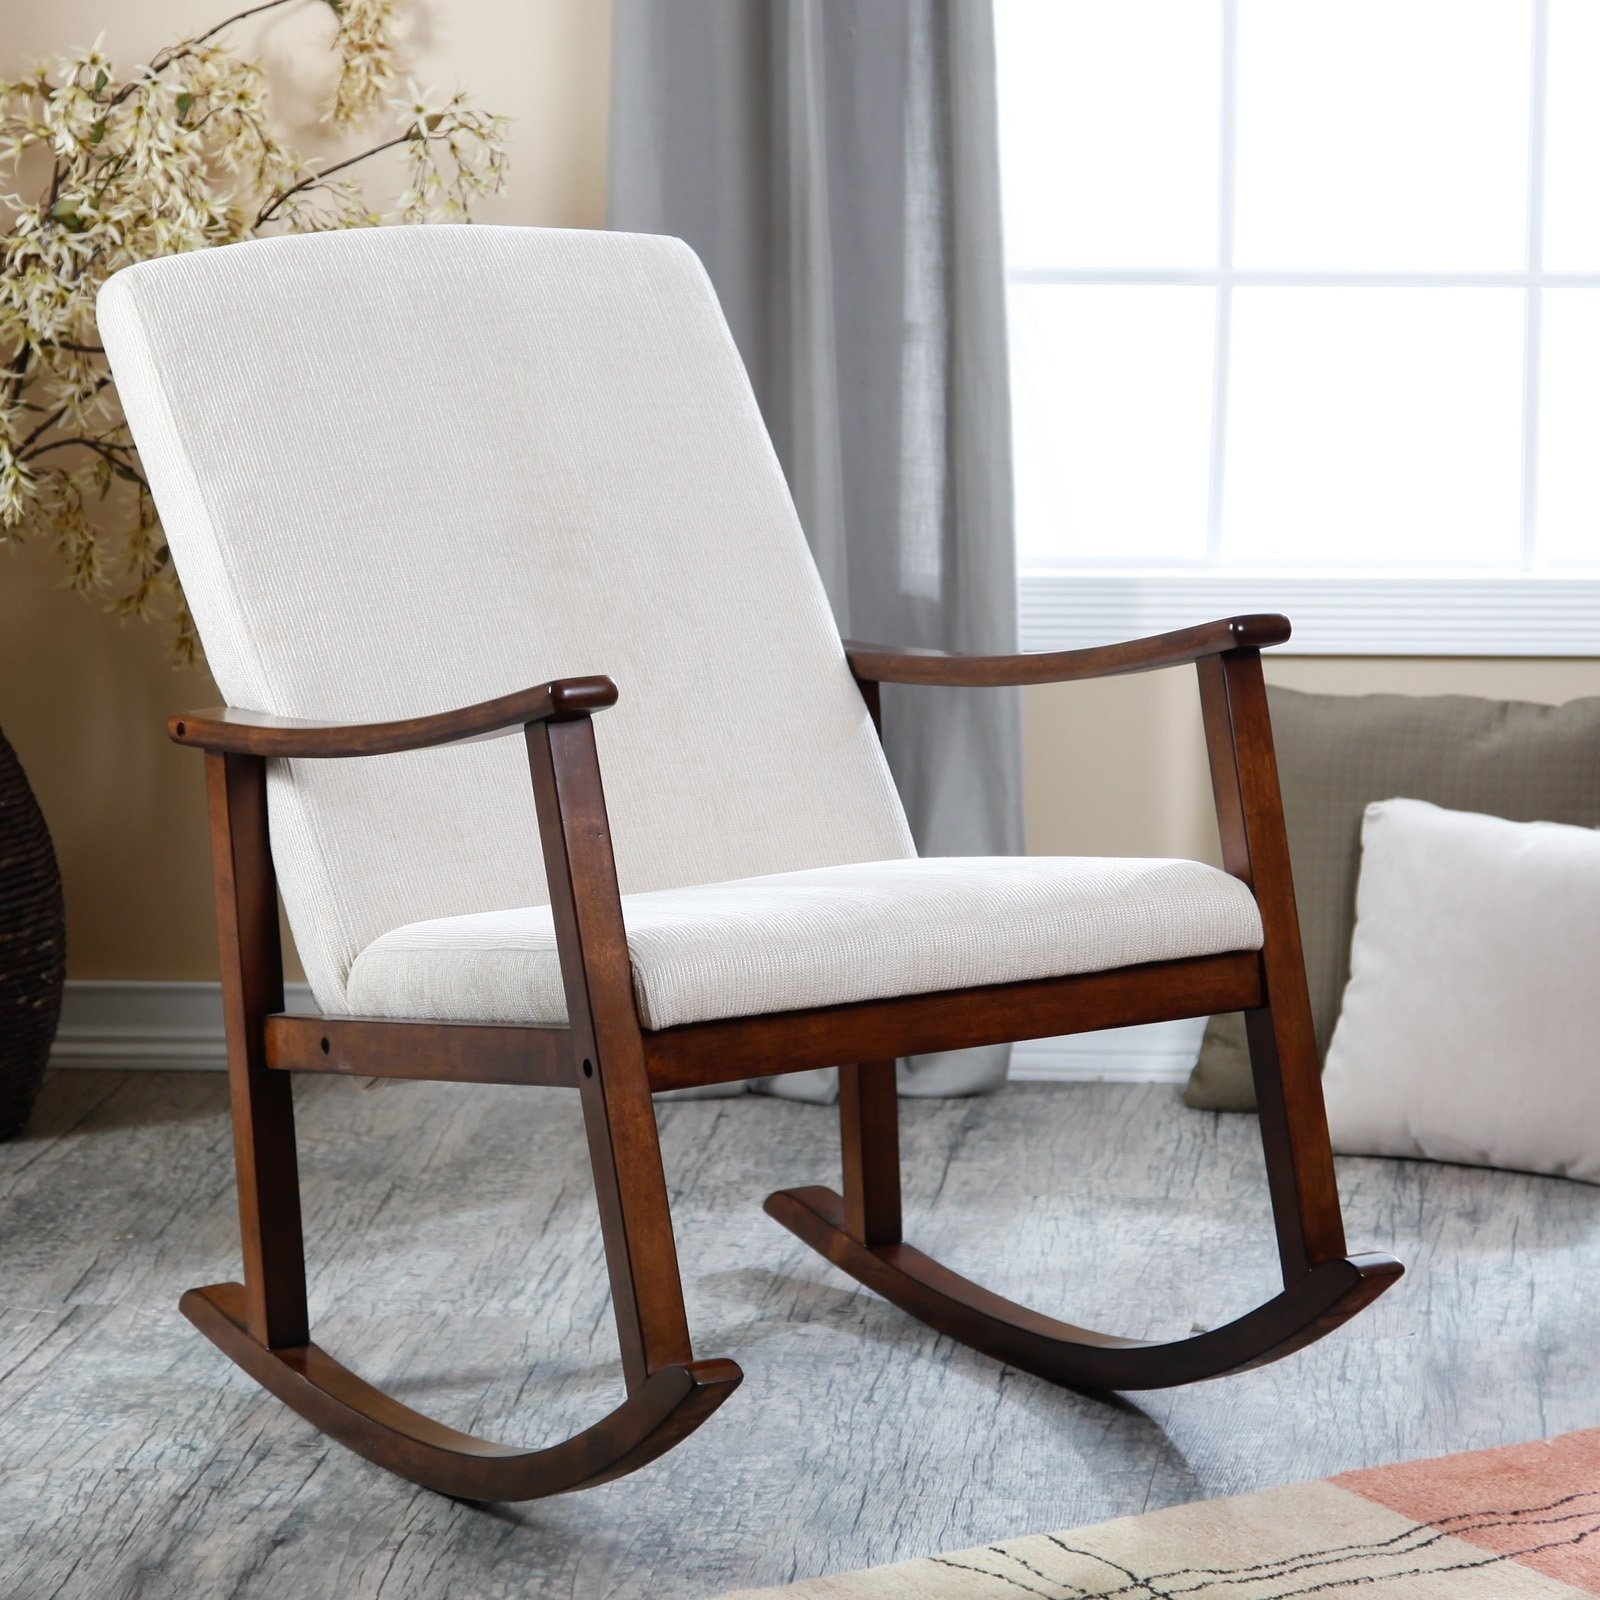 Inspiration about Teak Outdoor Rocking Chairs – Kevinjohnsonformayor For Rocking Chairs For Small Spaces (#1 of 15)